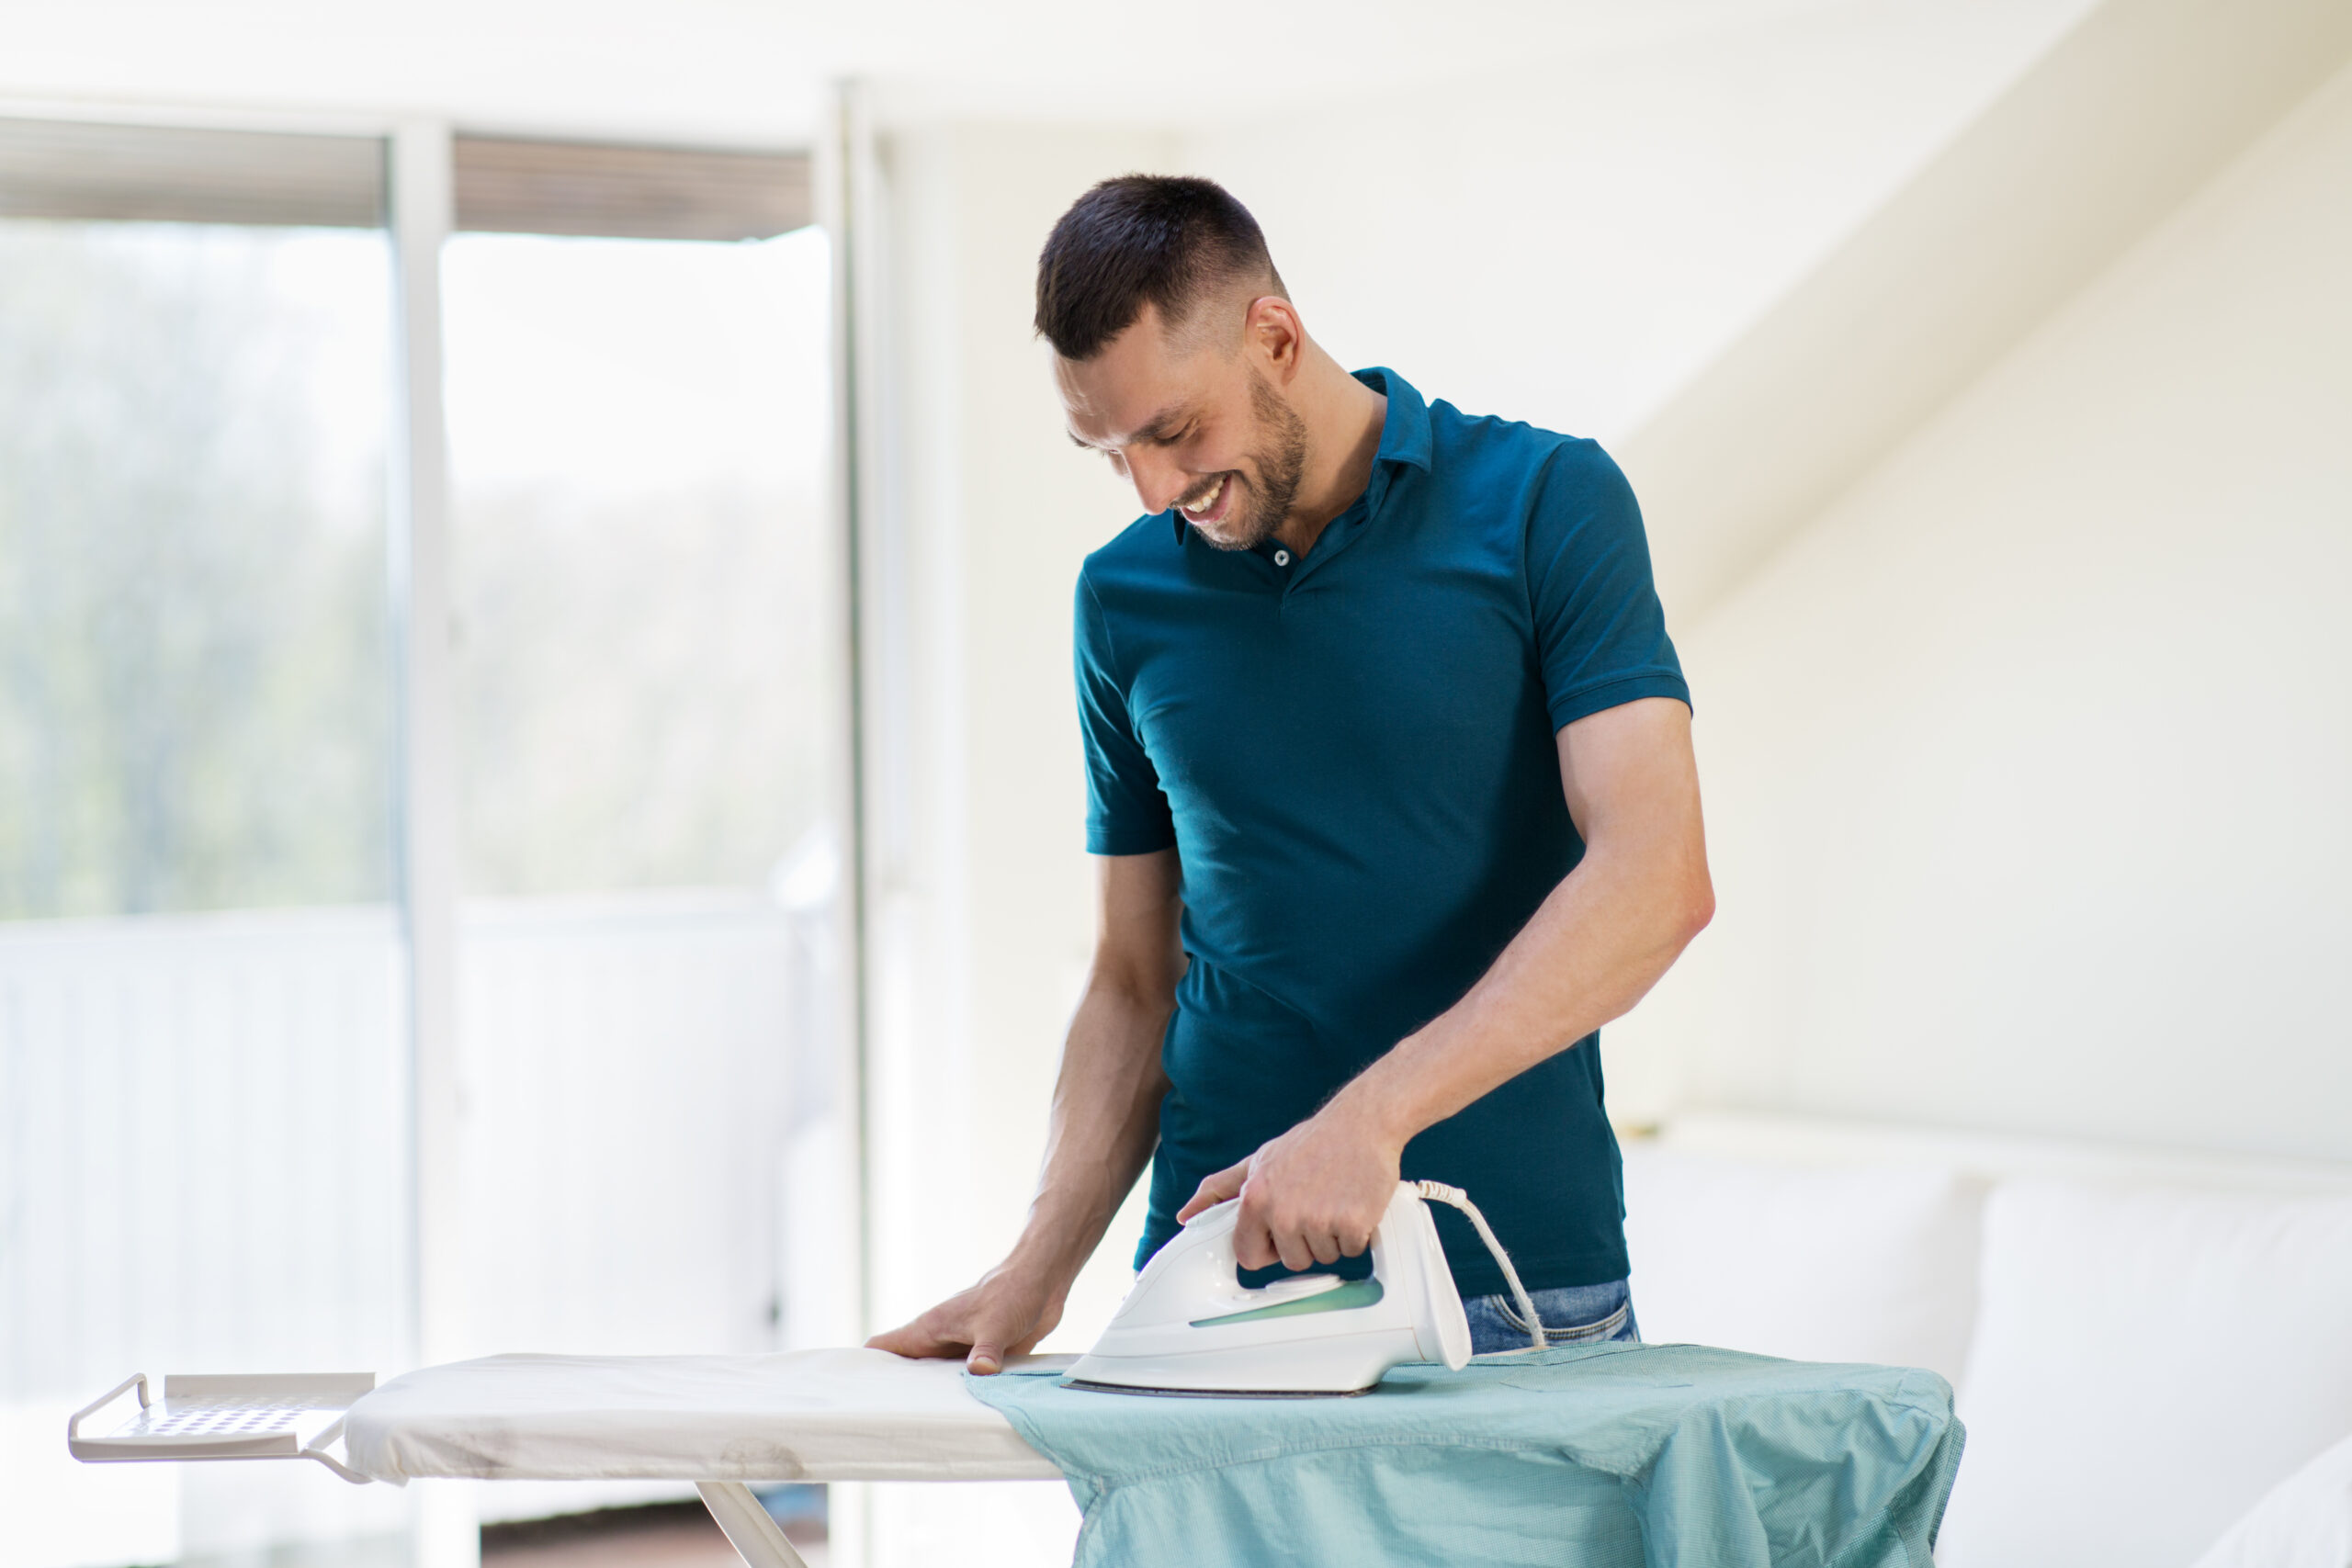 Would you wash and iron a shirt for a nickel?